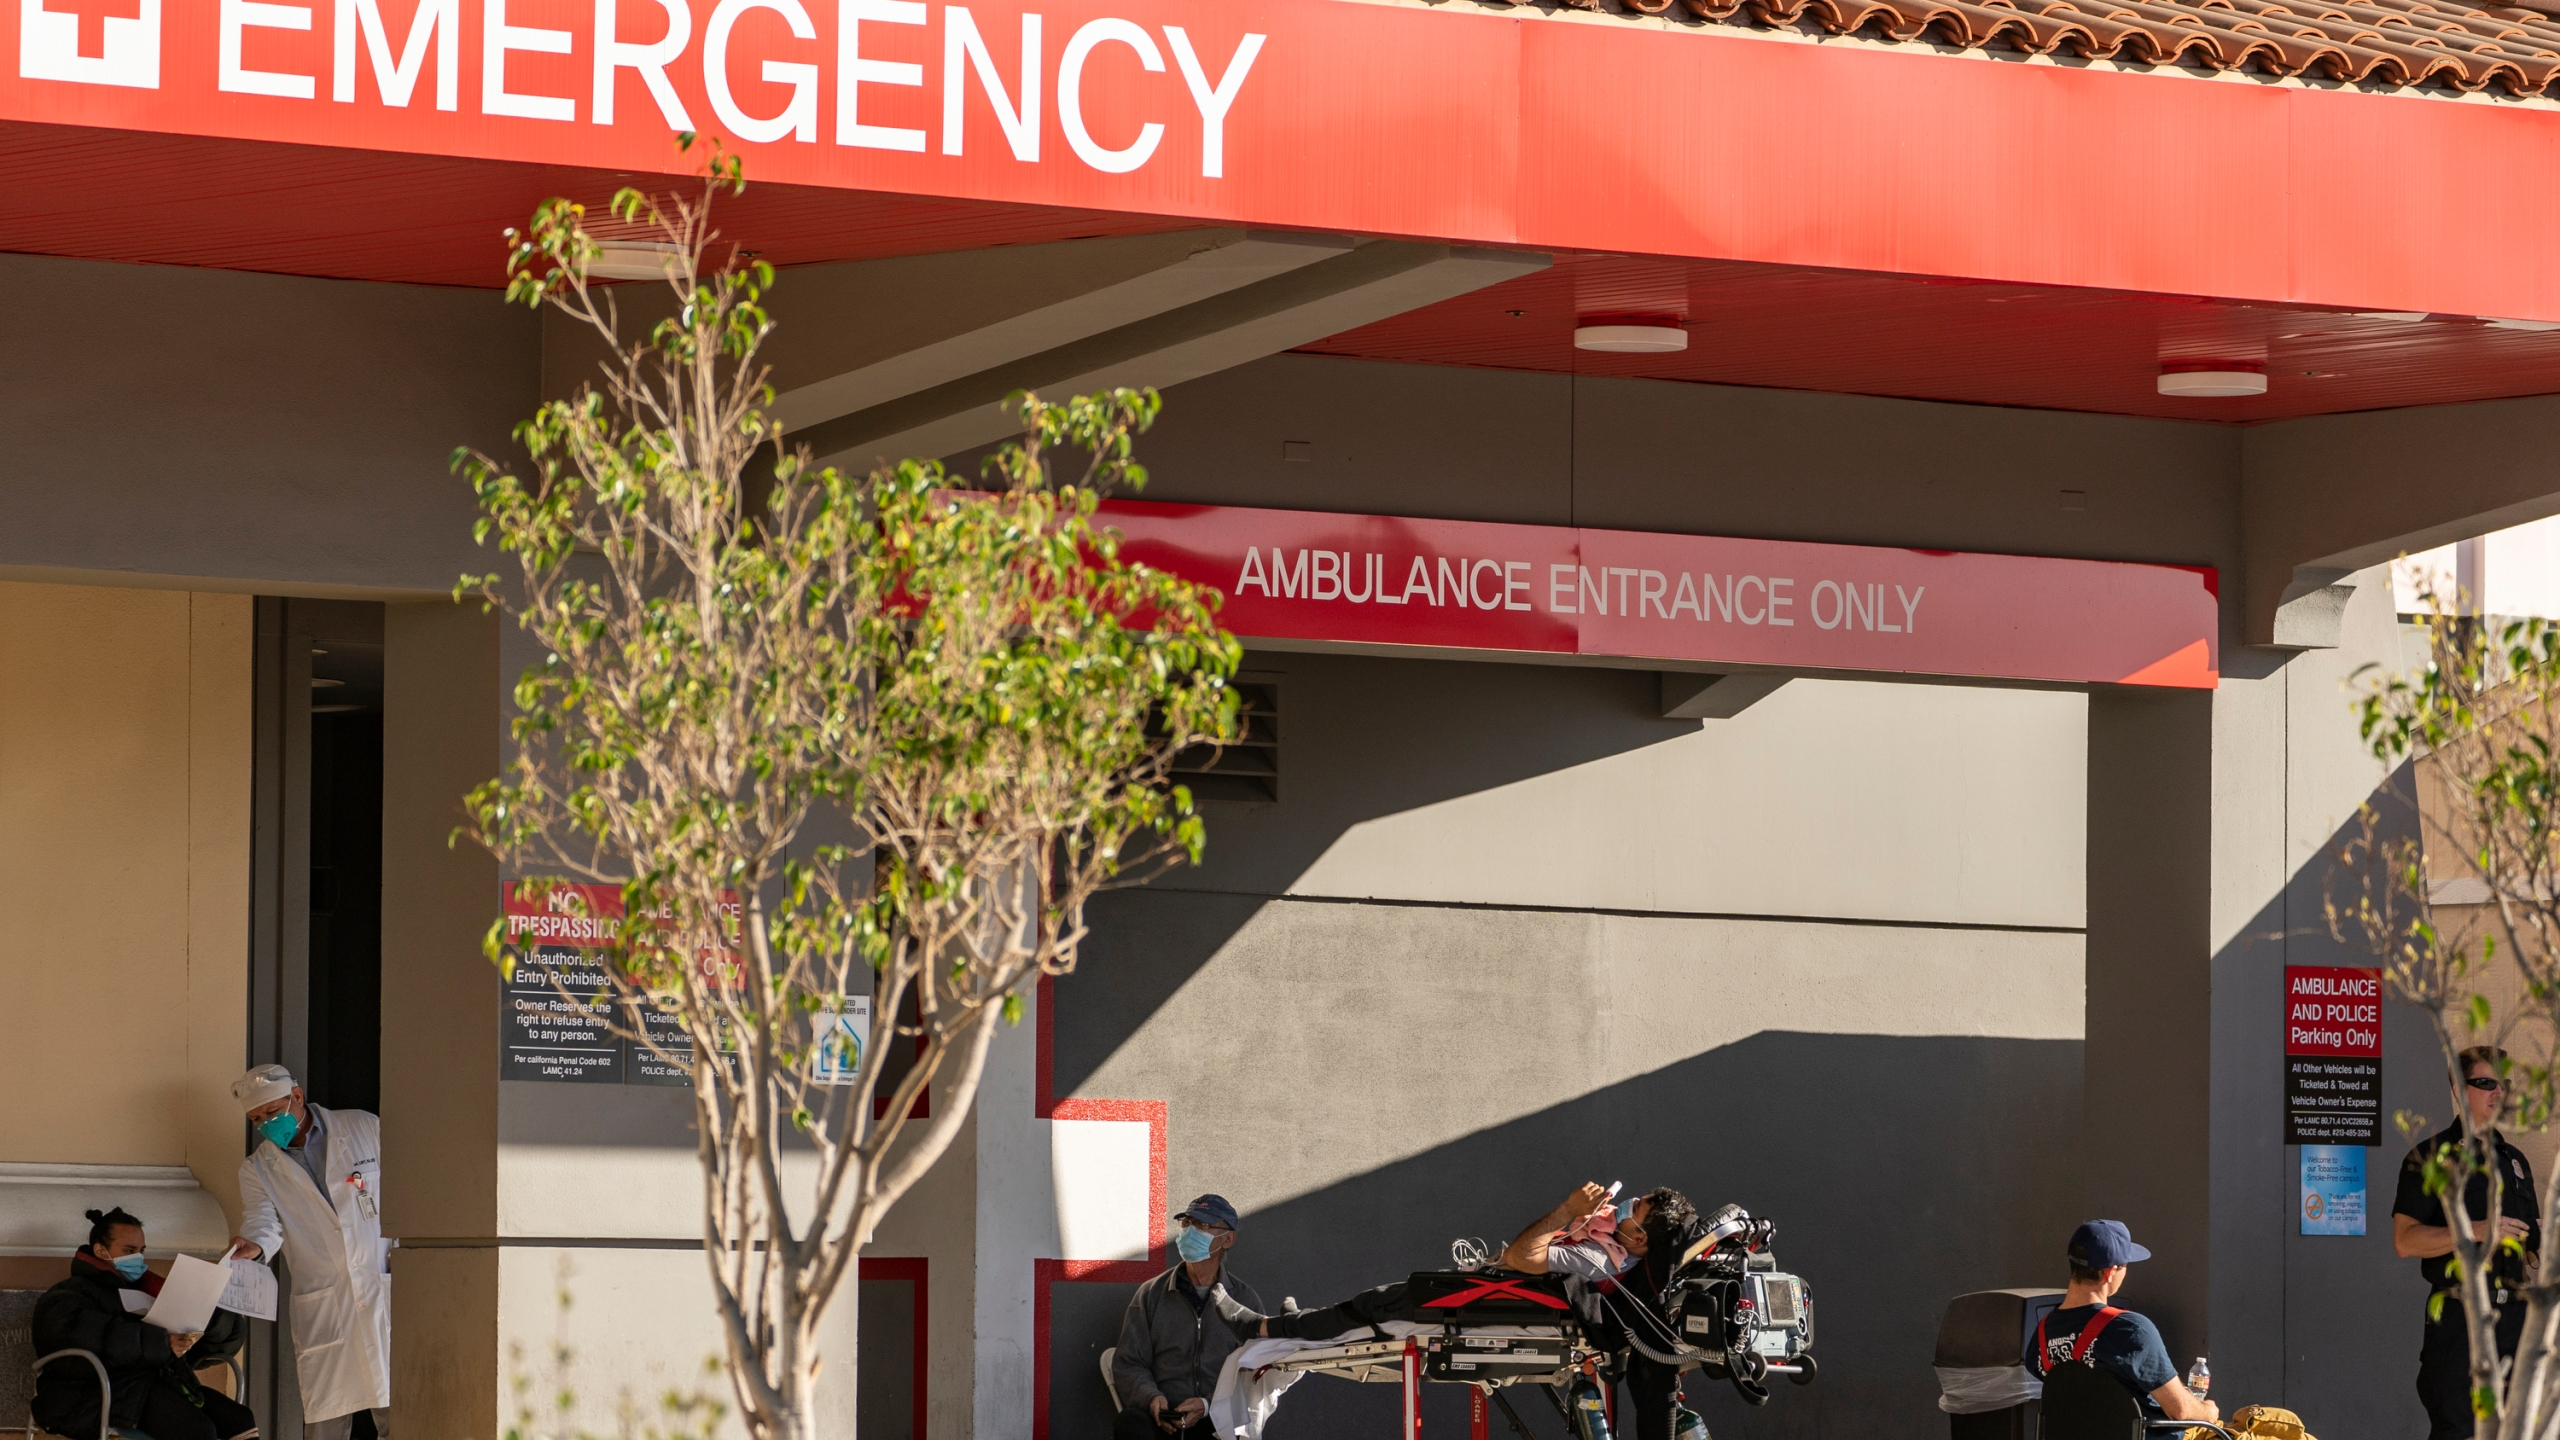 In this Dec. 18, 2020 file photo an unidentified patient receives oxygen on a stretcher, while Los Angeles Fire Department Paramedics monitor him outside the Emergency entrance, waiting for admission at the CHA Hollywood Presbyterian Medical Center in Los Angeles. (Damian Dovarganes/AP Photo)